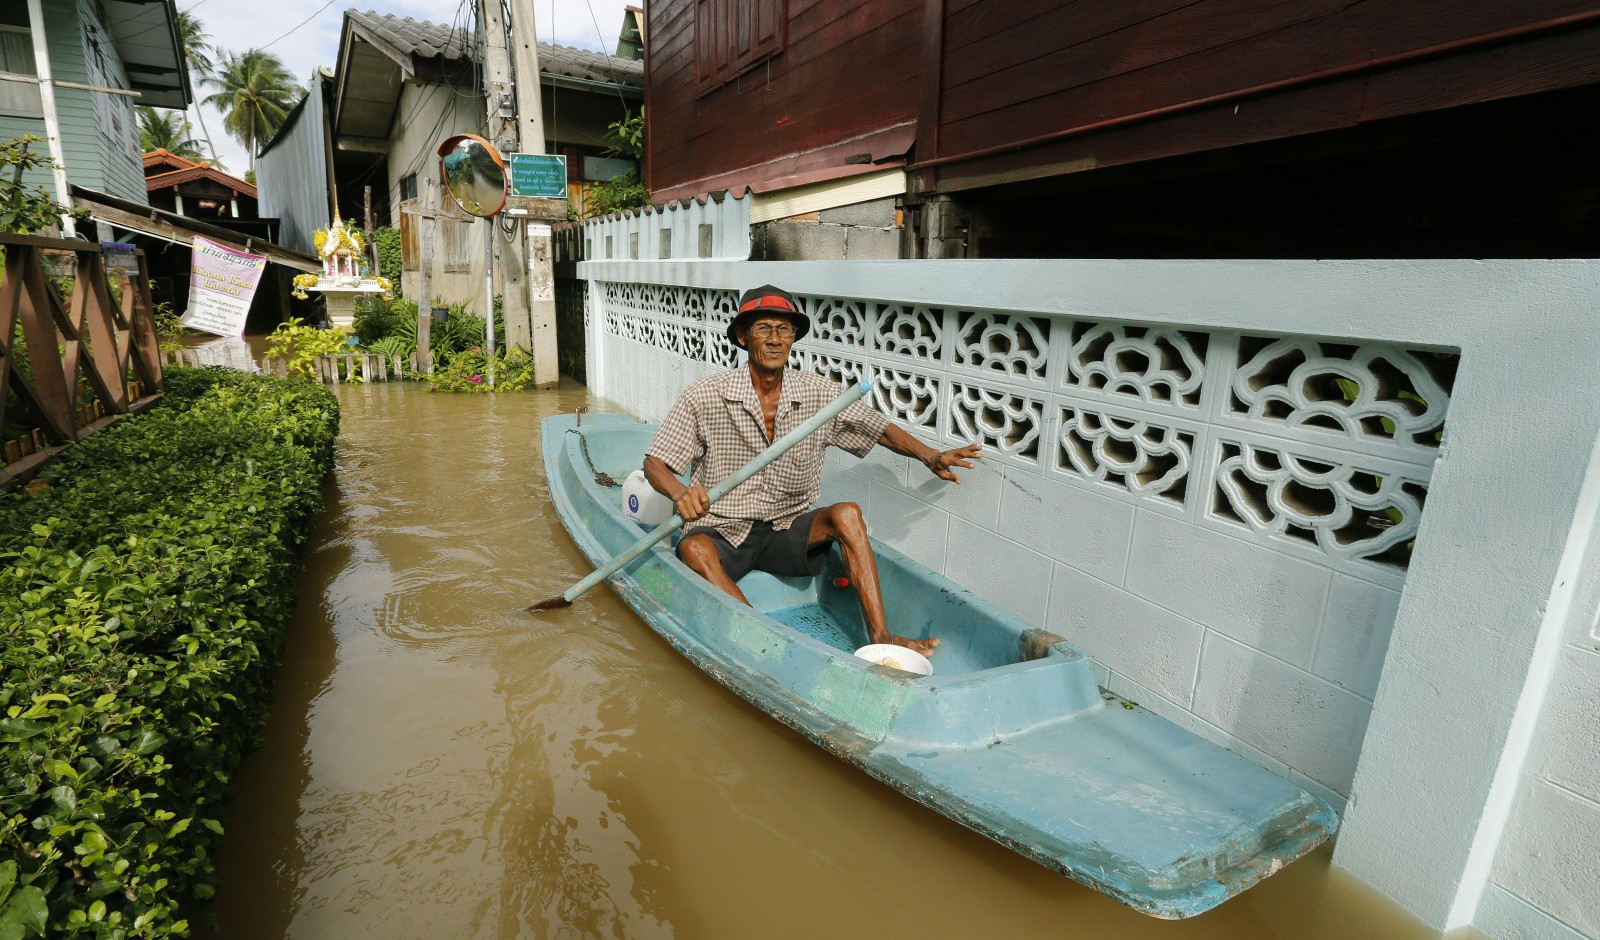 epa03901624 A Thai villager uses a boat in a flooded street on the Ko Kret island, Nonthaburi province, on the outskirts of Bangkok, Thailand, 08 October 2013. The death toll in nearly three weeks of heavy monsoon flooding in Thailand rose to at least 34 on 08 October 2013. Some 2.9 million residents reported to be affected in 33 of the 77 provinces have had their lives disrupted by the downpours and flash floods, with 4,947 roads and 201 bridges damaged, the Disaster Prevention and Relief Department said. Thailand's government has said that Bangkok would likely be spared from major flooding this year, adding that a repeat of the massive flooding of 2011, in which 813 people were killed nationwide and economic losses topped 40 billion dollars, was unlikely.  EPA/NARONG SANGNAK